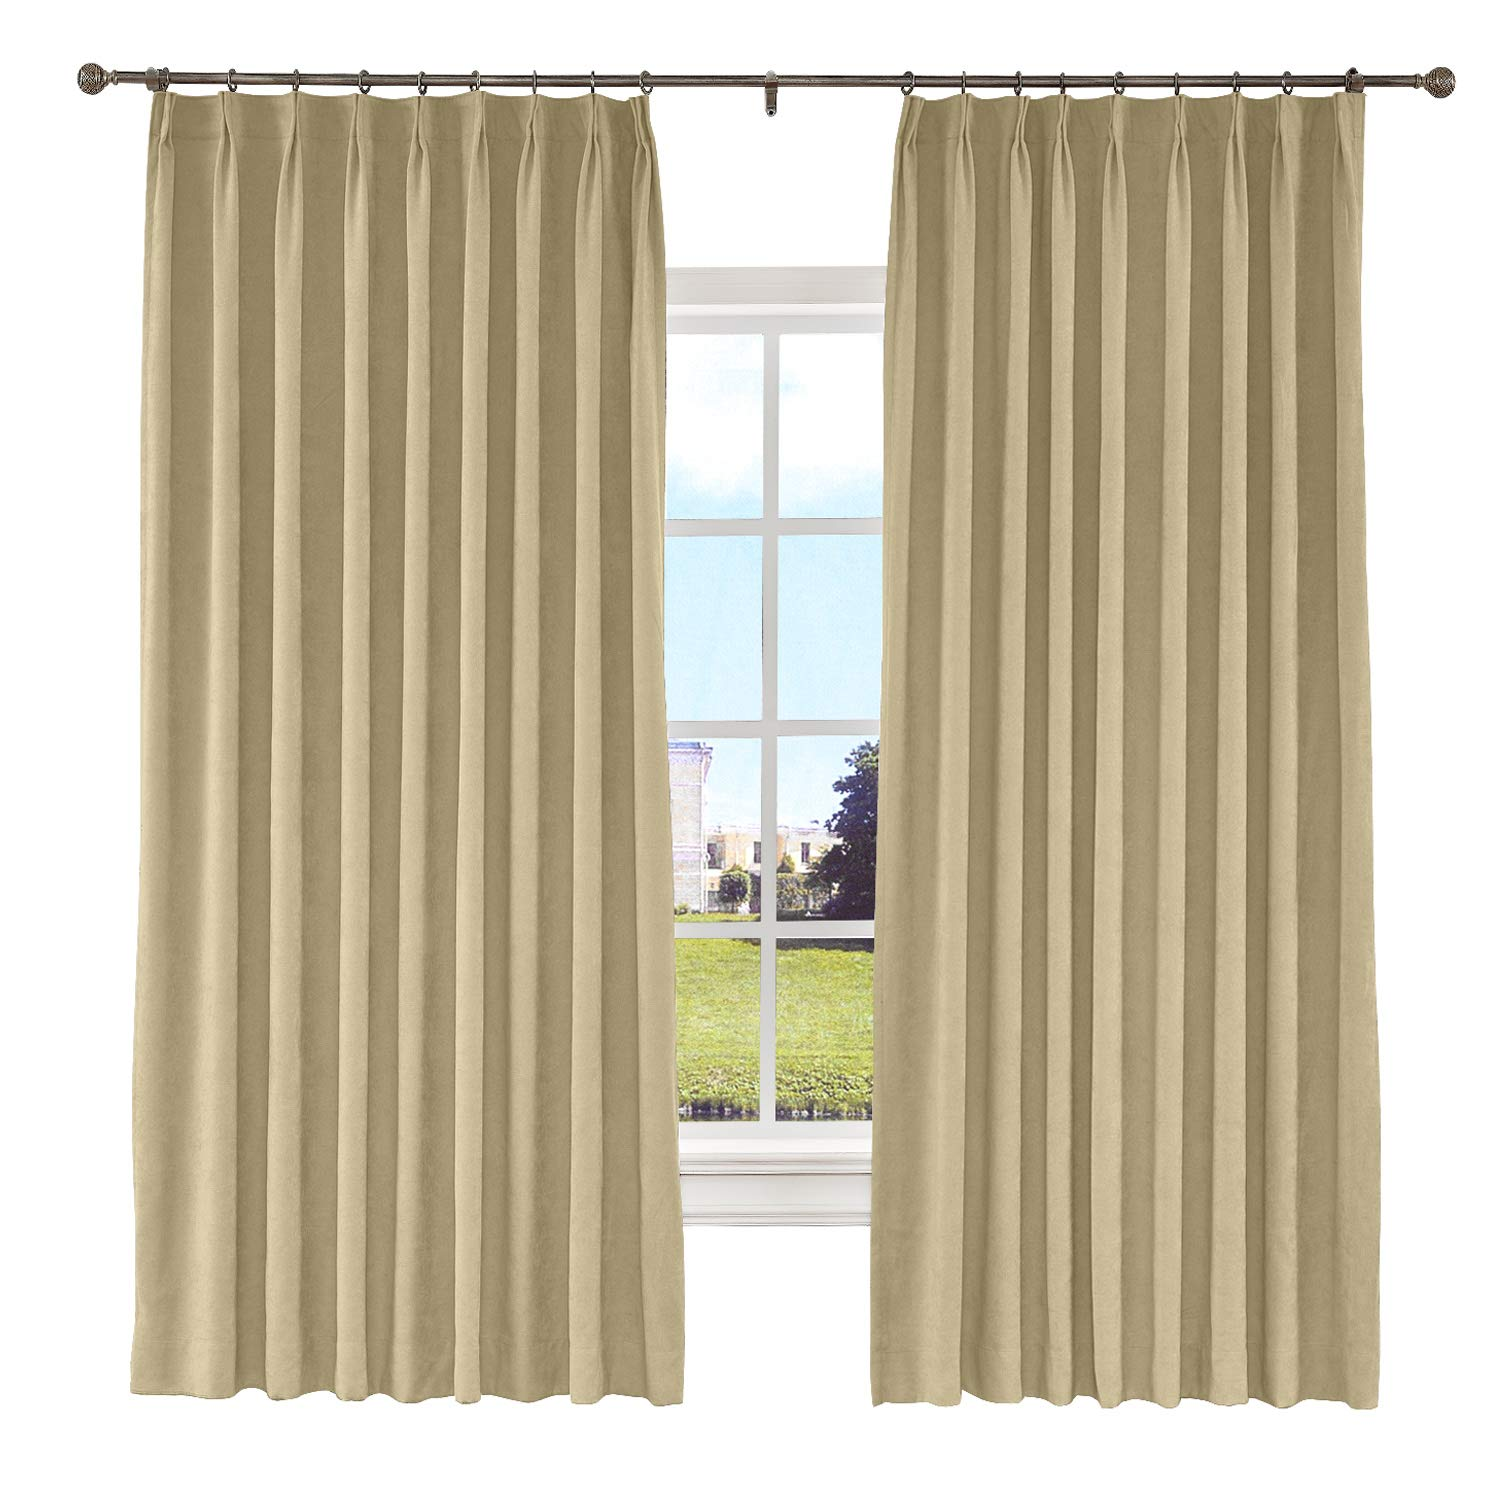 Macochico Pinch Pleated Curtain Blackout Lined Polyester Cotton Drapes for Bedroom Noise Reducing for Living Room Bedroom Meetingroom Patio Door,Burly Wood 100W x 84L Inch (1 Panel)